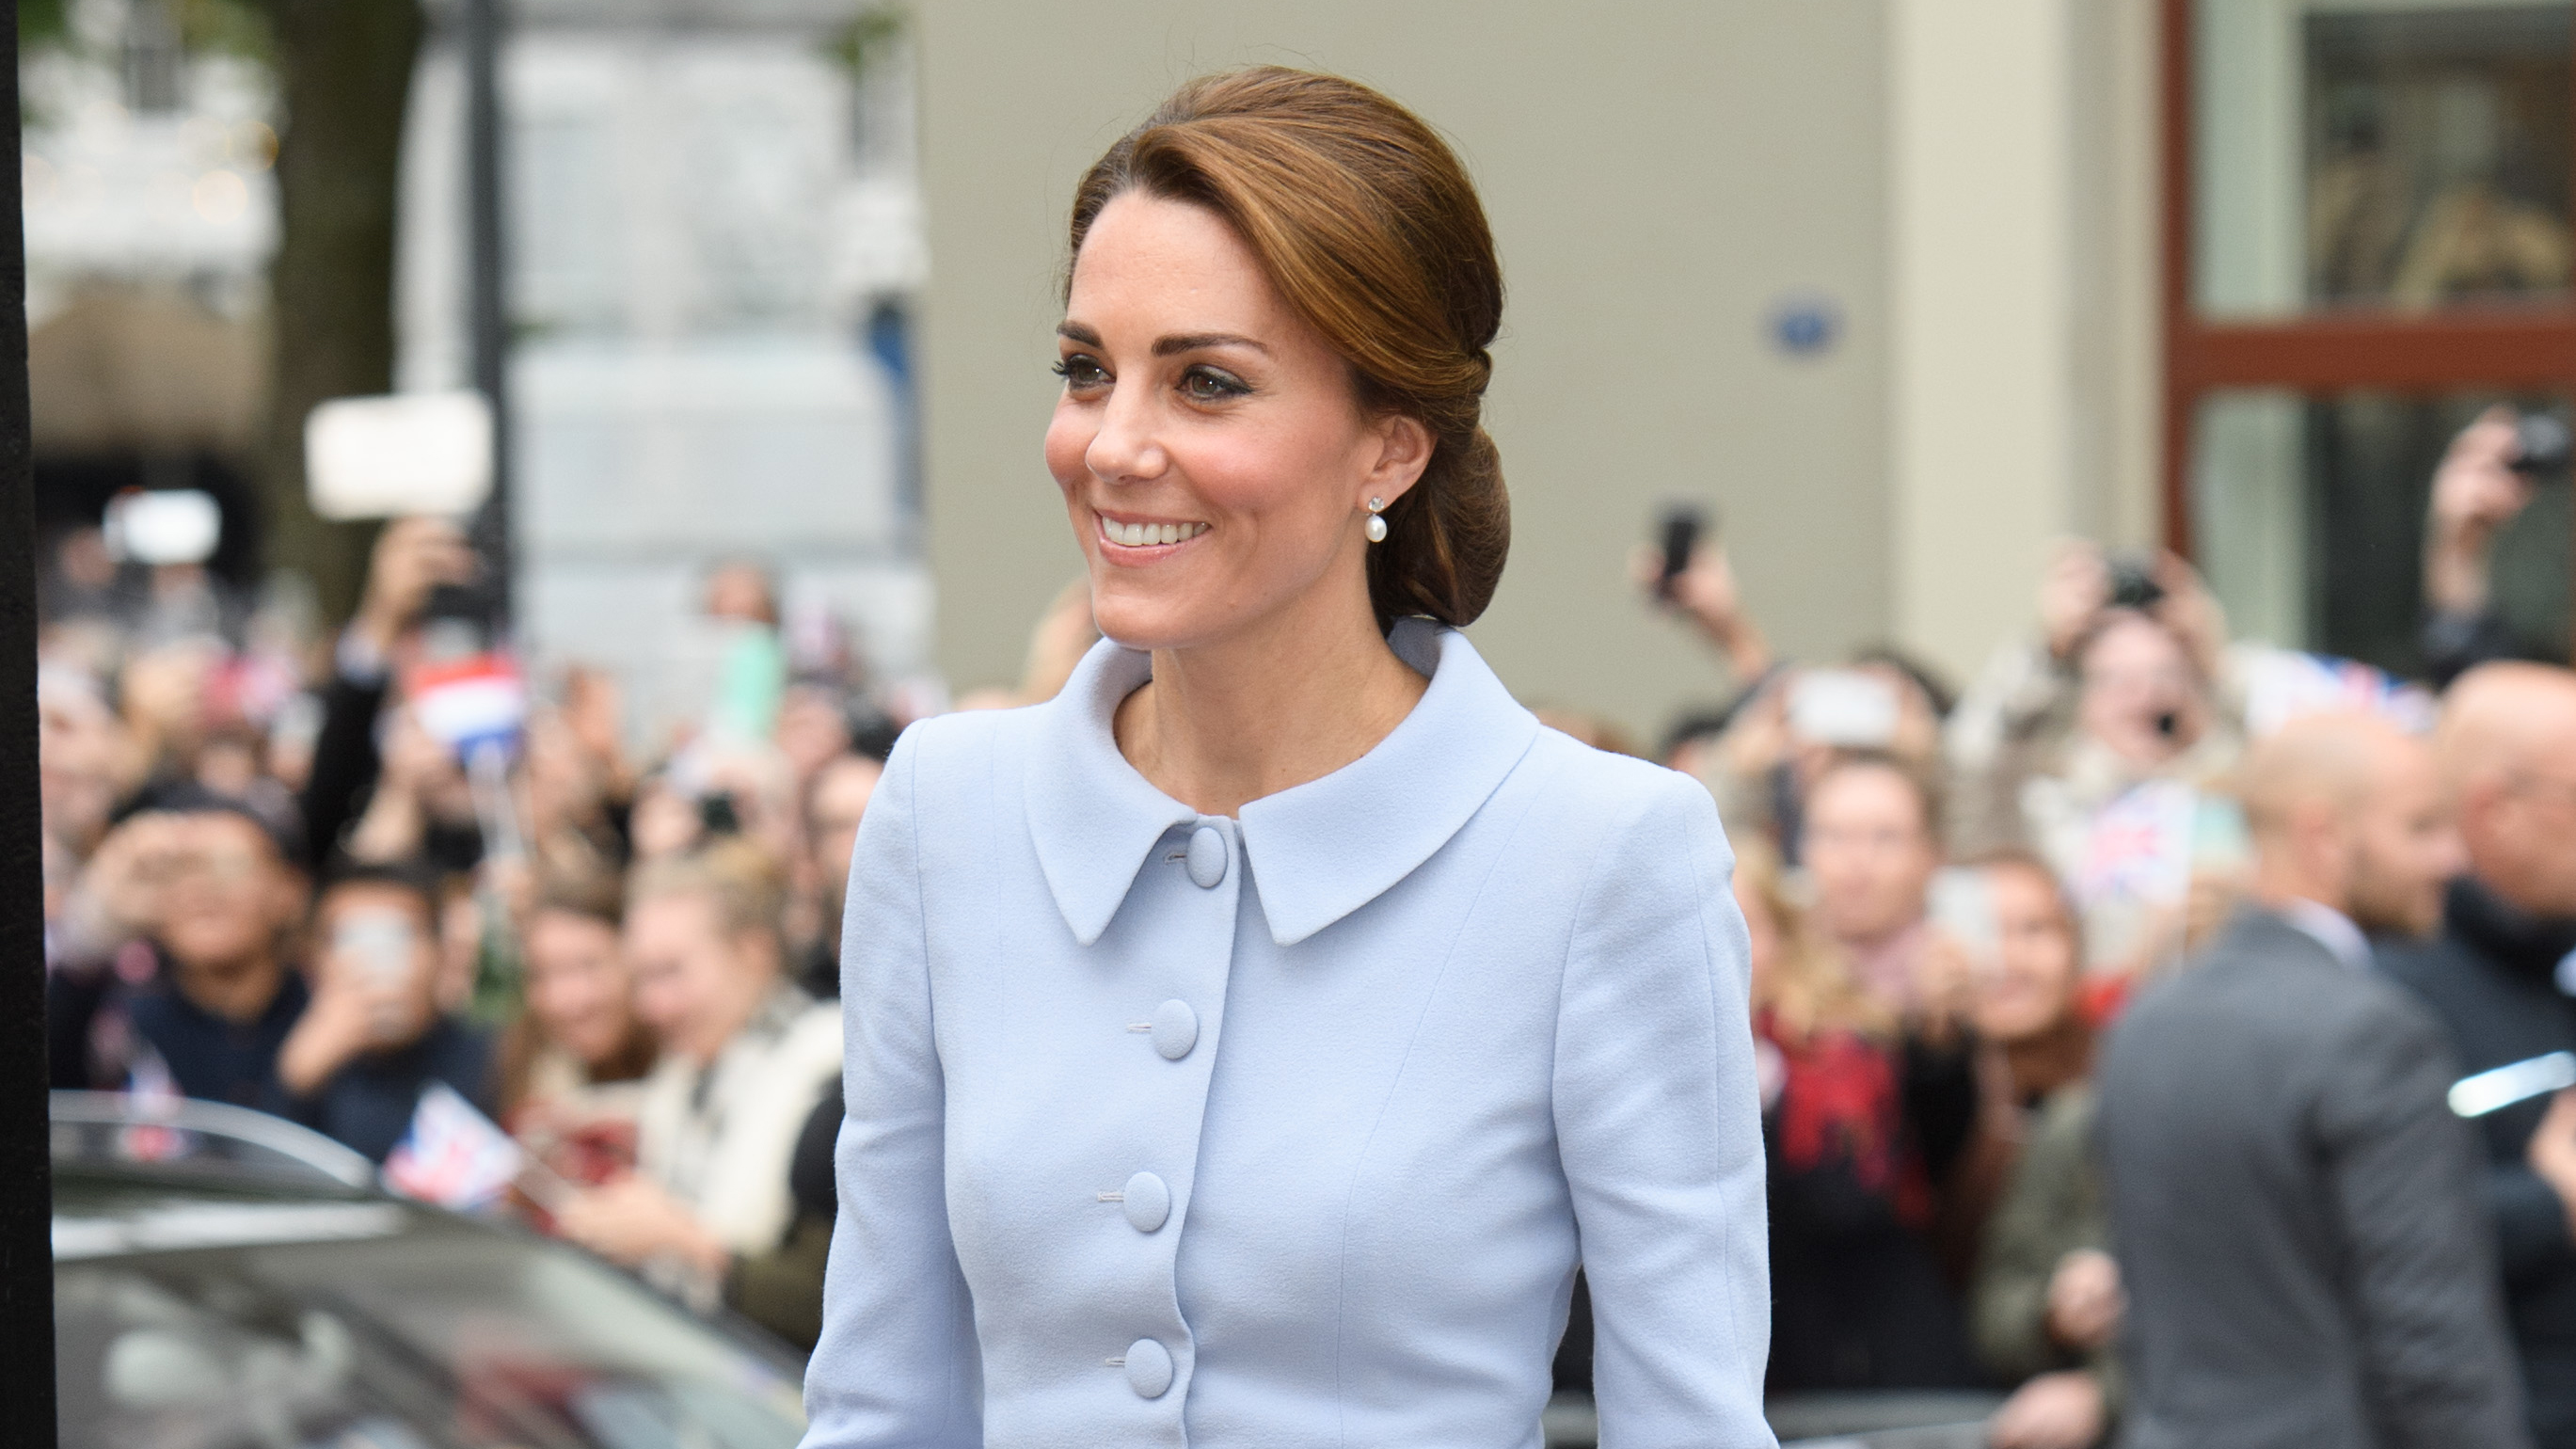 Duchess Kate trials one of AW16's kitsch accessory trends, the hairnet